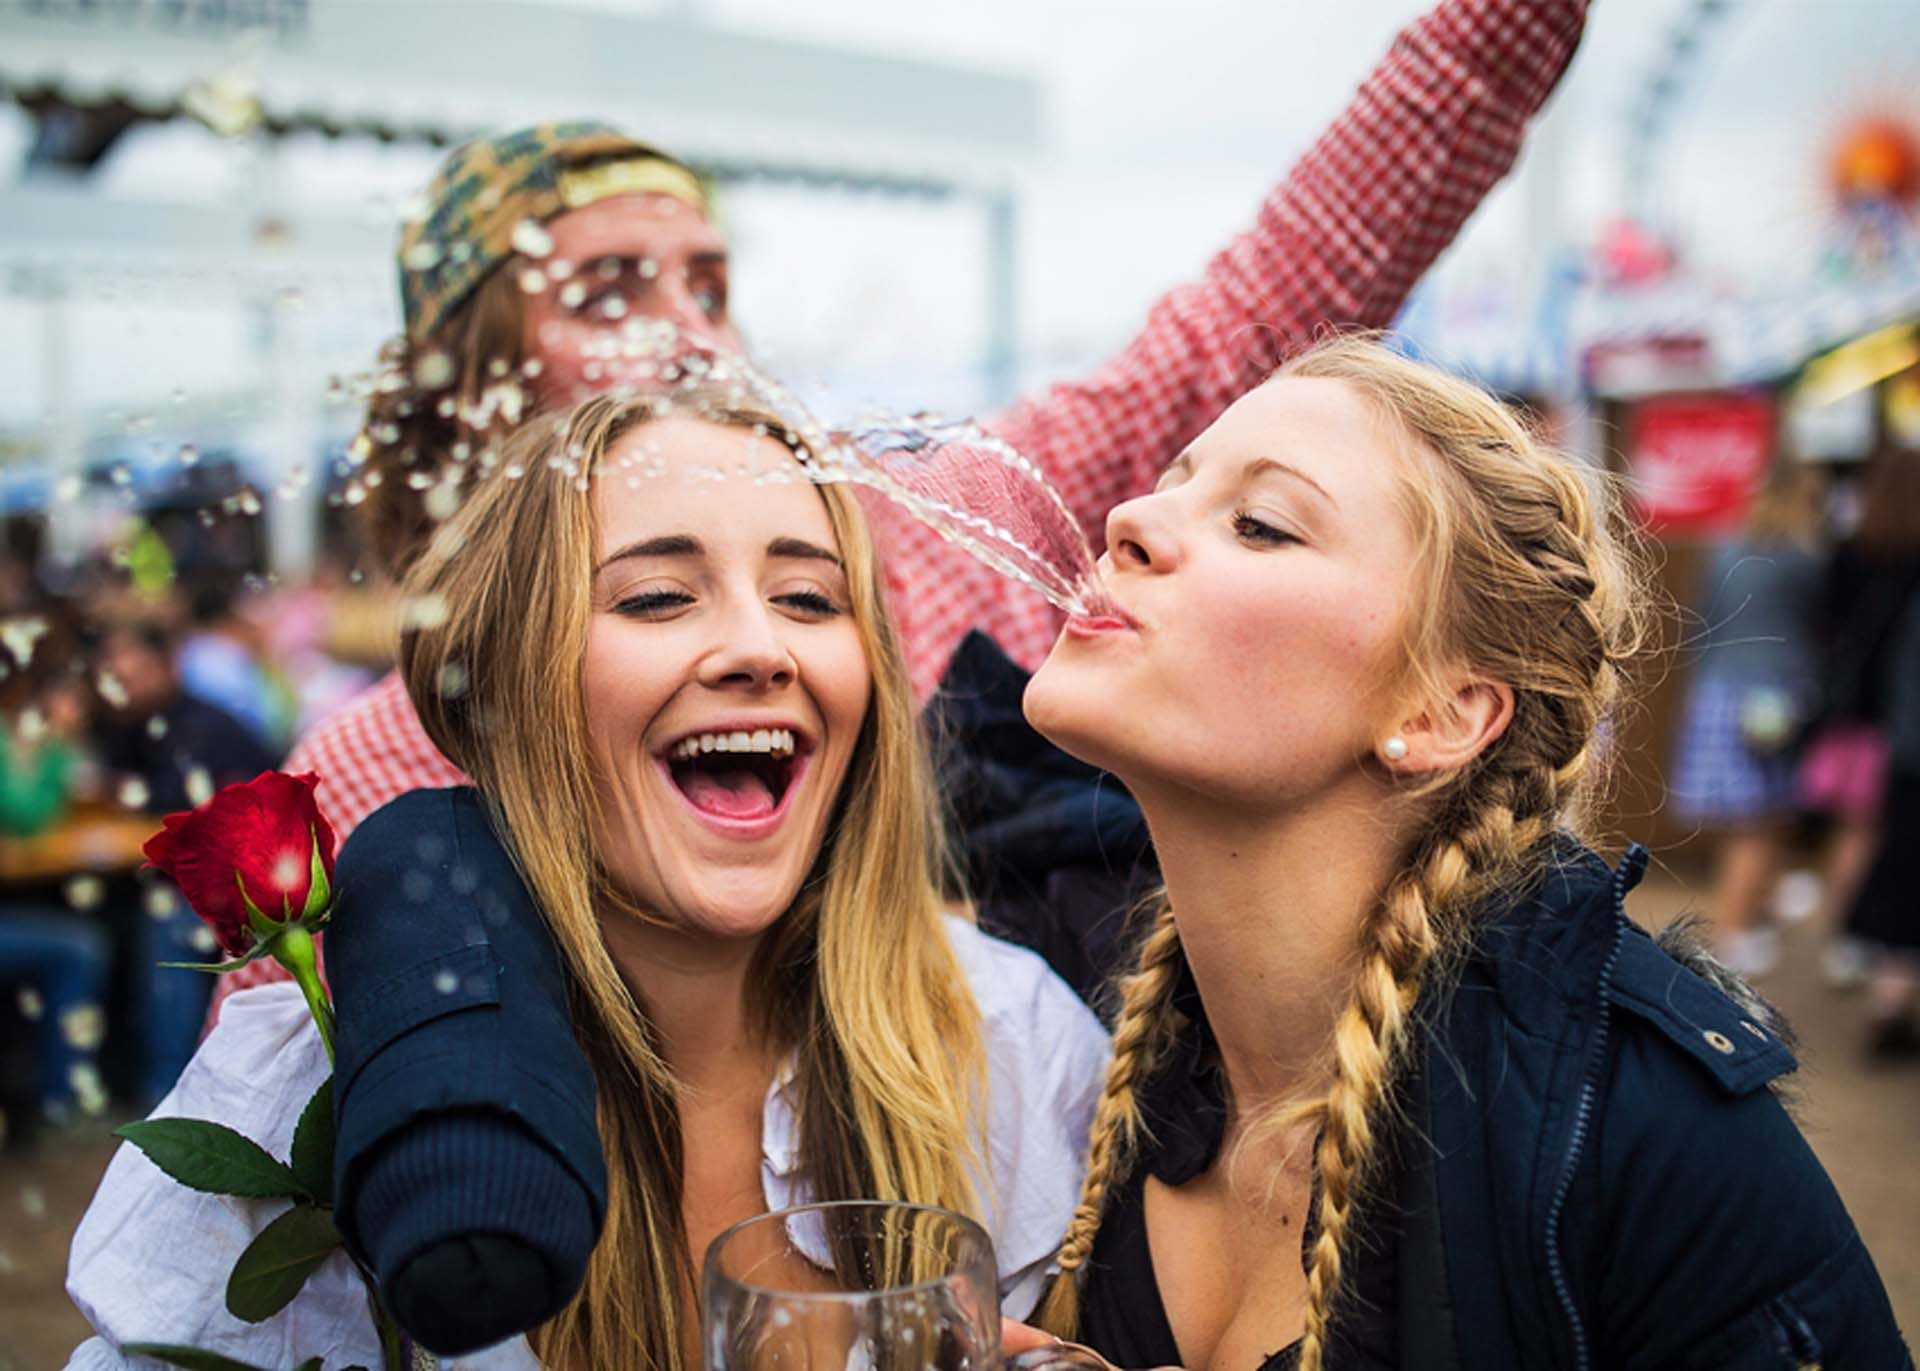 Oktoberfest Surprises for Americans: The Good, the Bad, and the Stokie